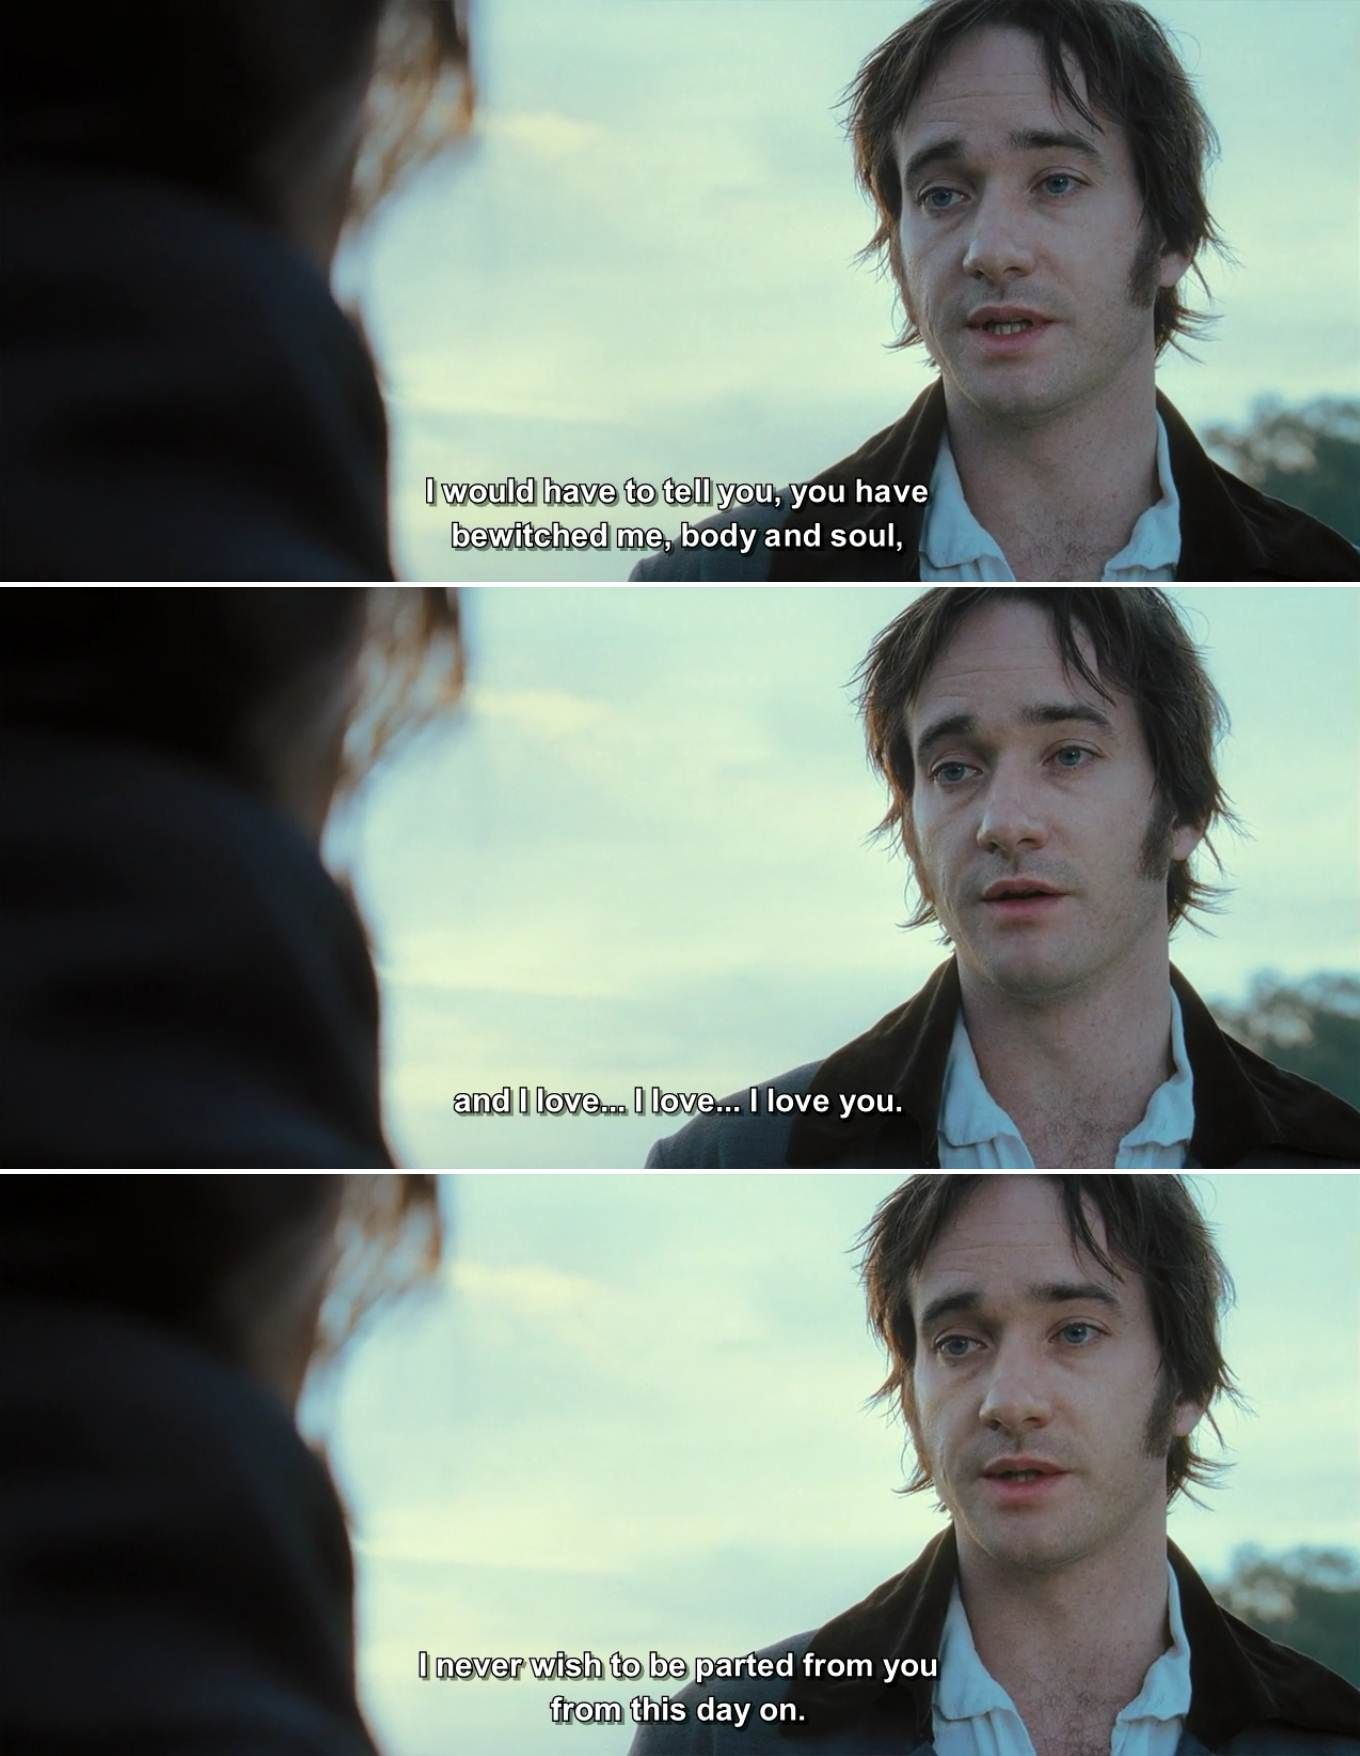 quotes, movie quotes, pride and prejudice 2005, pride and prejudice, pride and prejudice movie #prideandprejudice